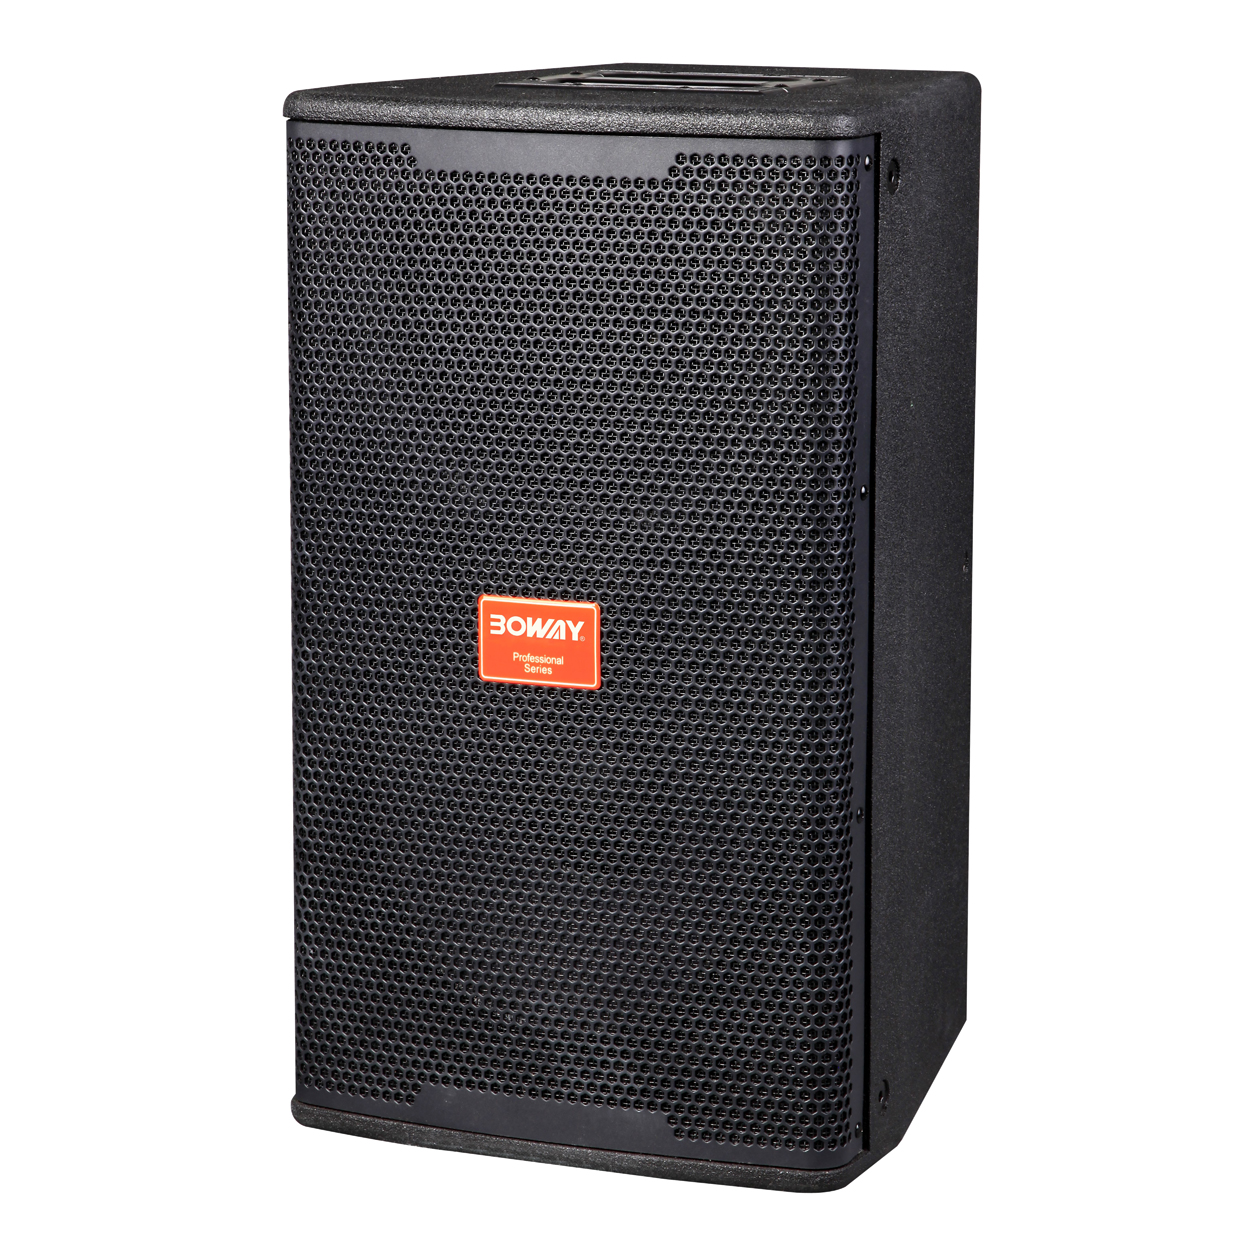 "KP610 10"" two way speaker"